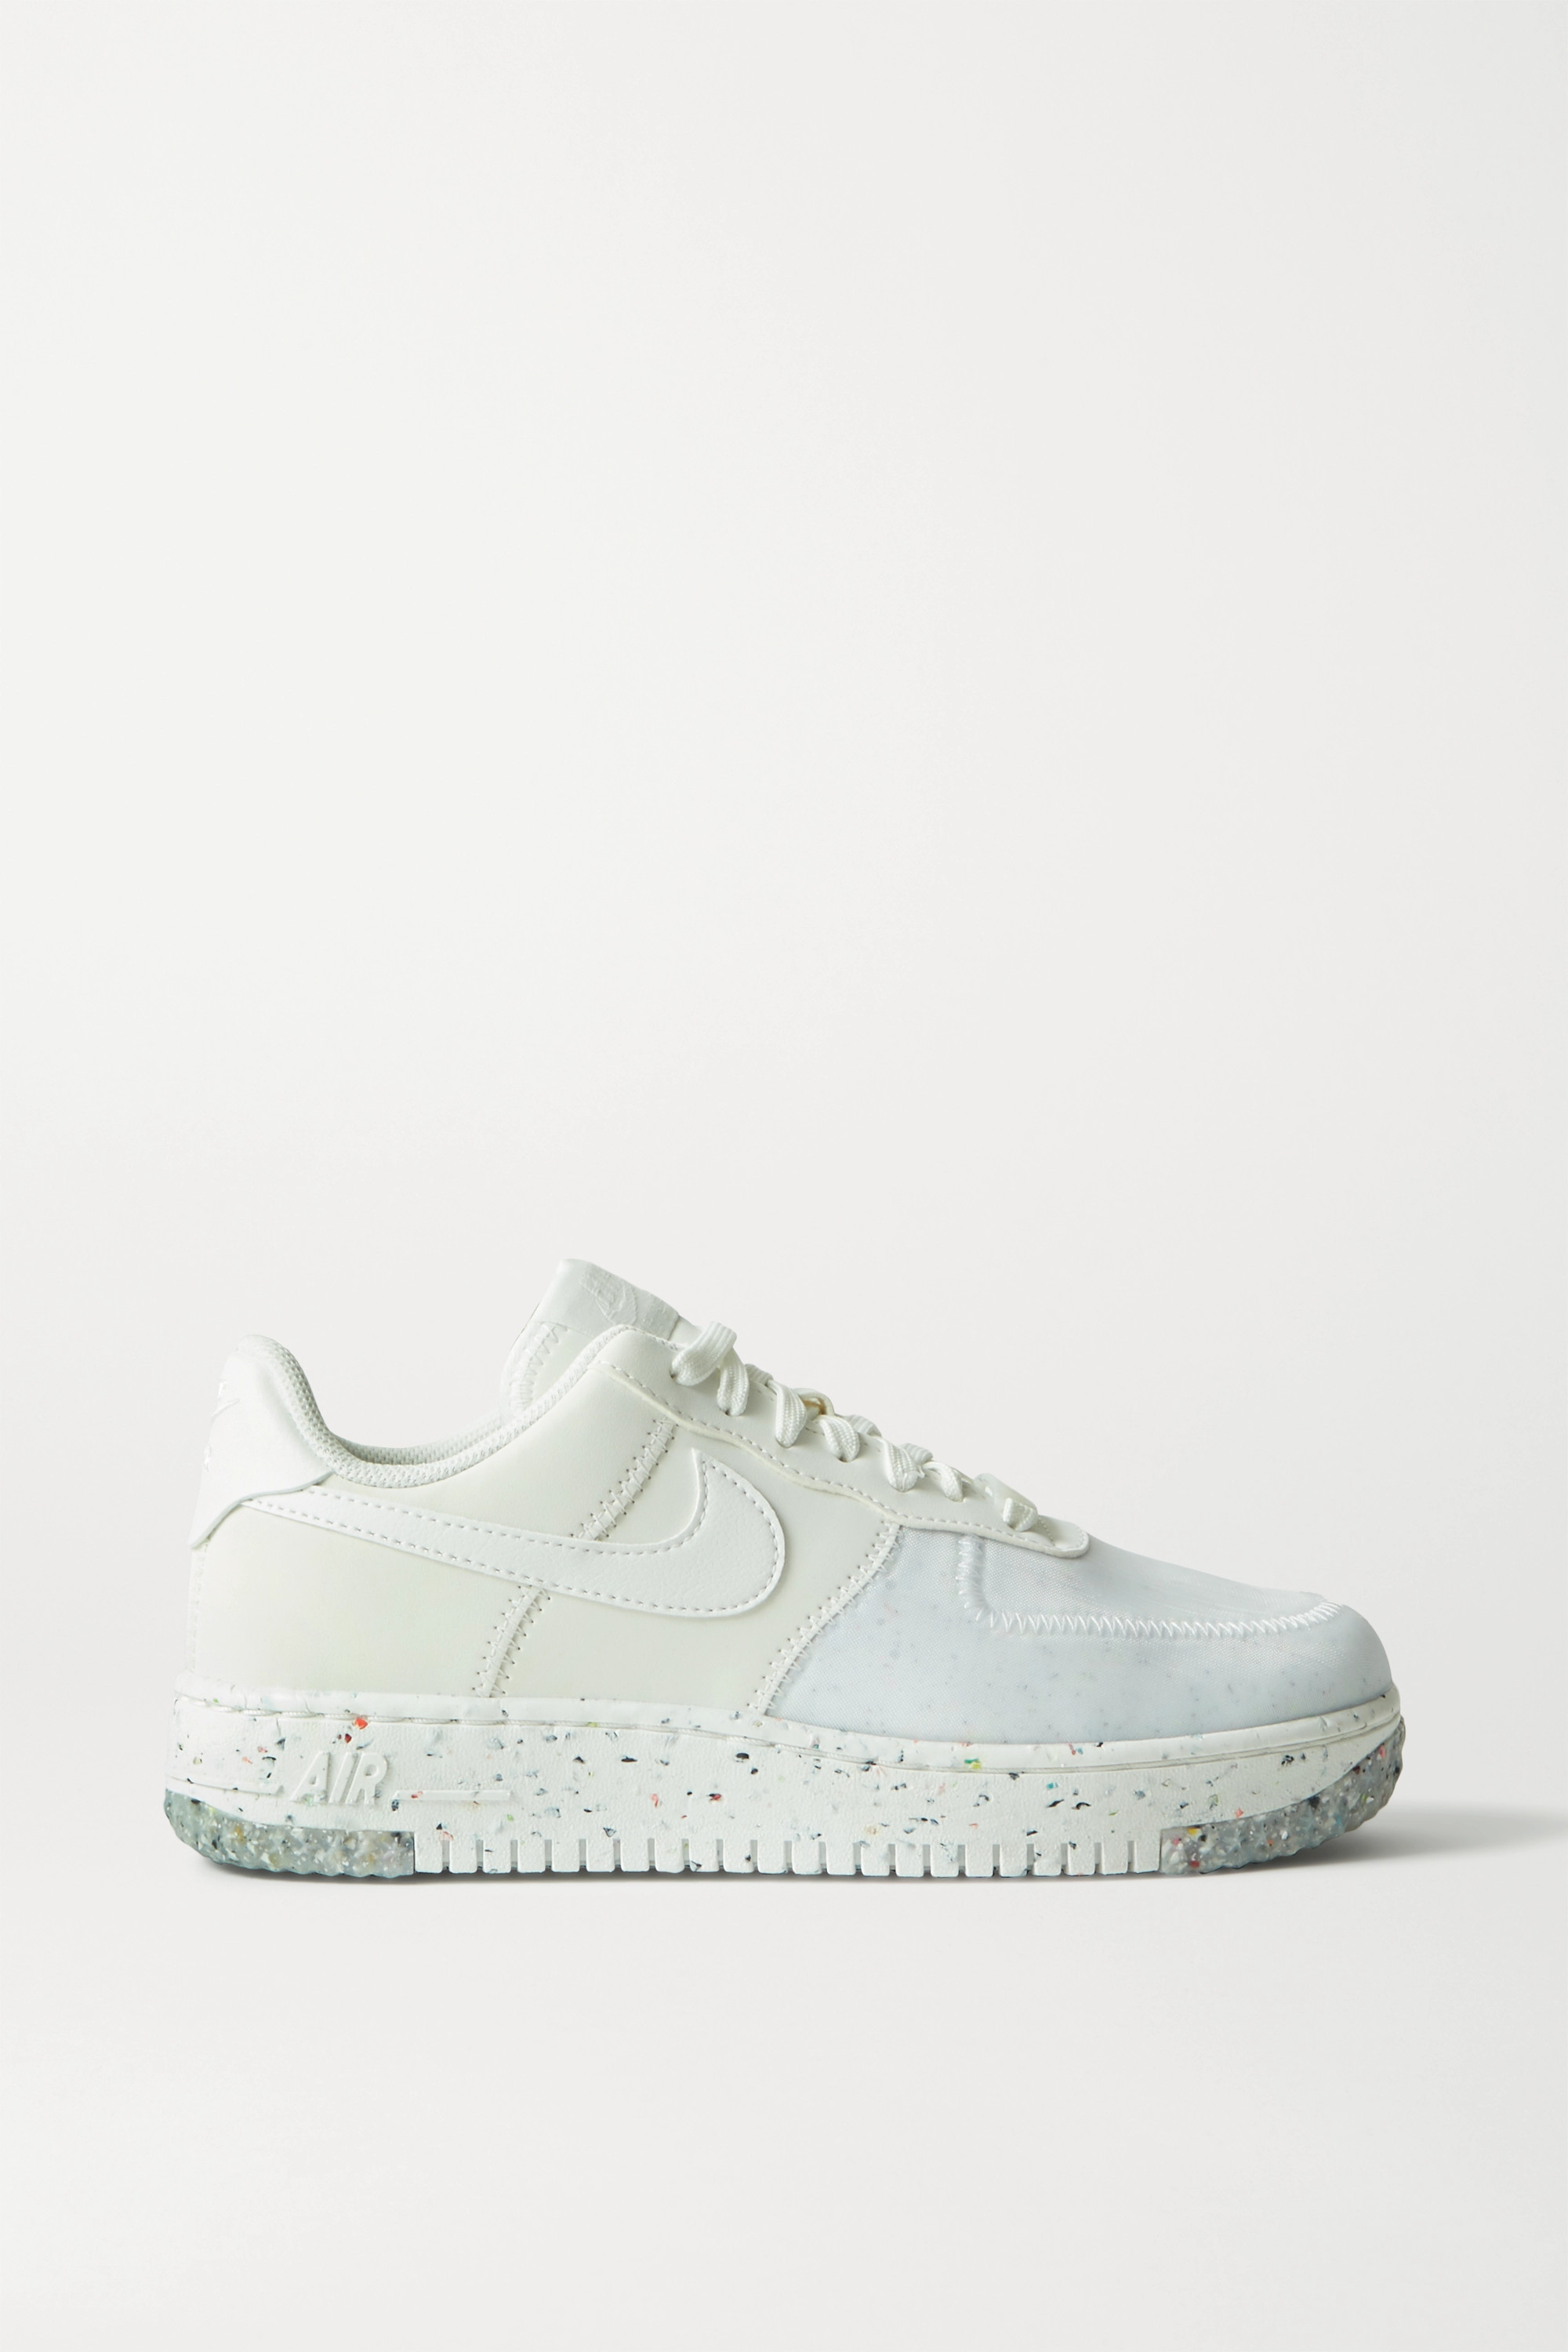 nike air force 1 synthetic leather Promotions